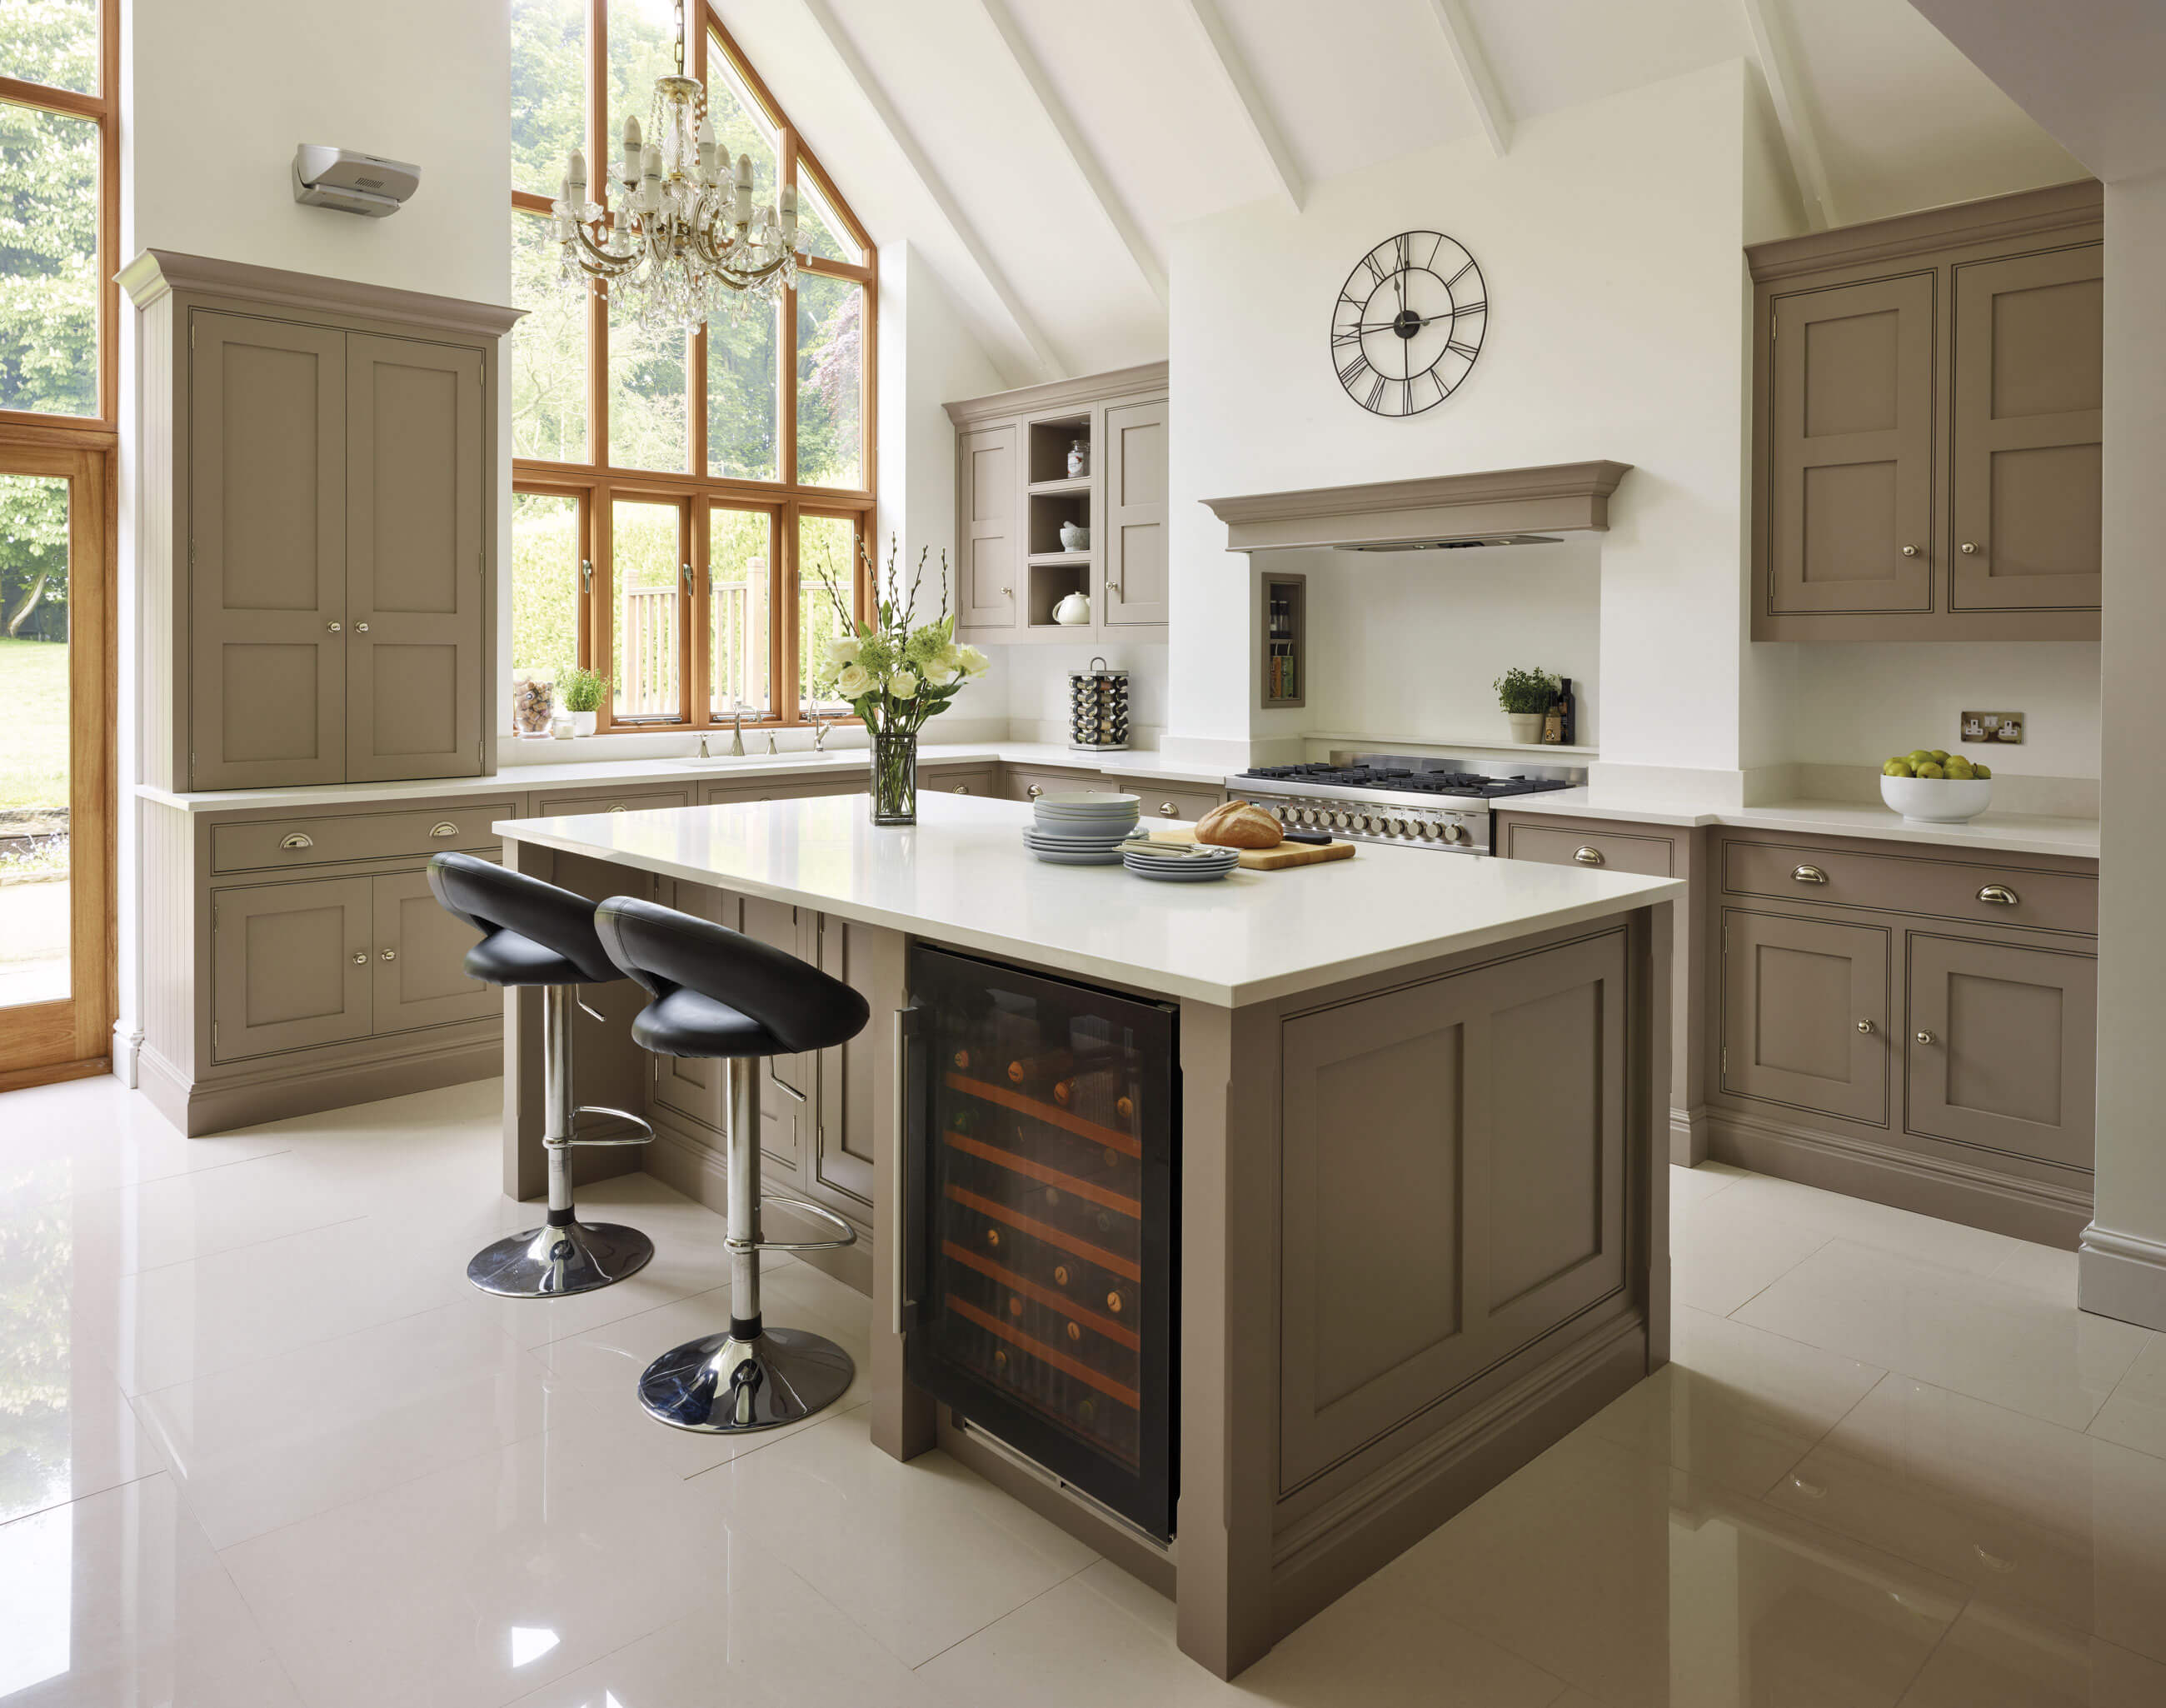 Kitchen Islands With Storage And Seating Classic Shaker Kitchen | Tom Howley